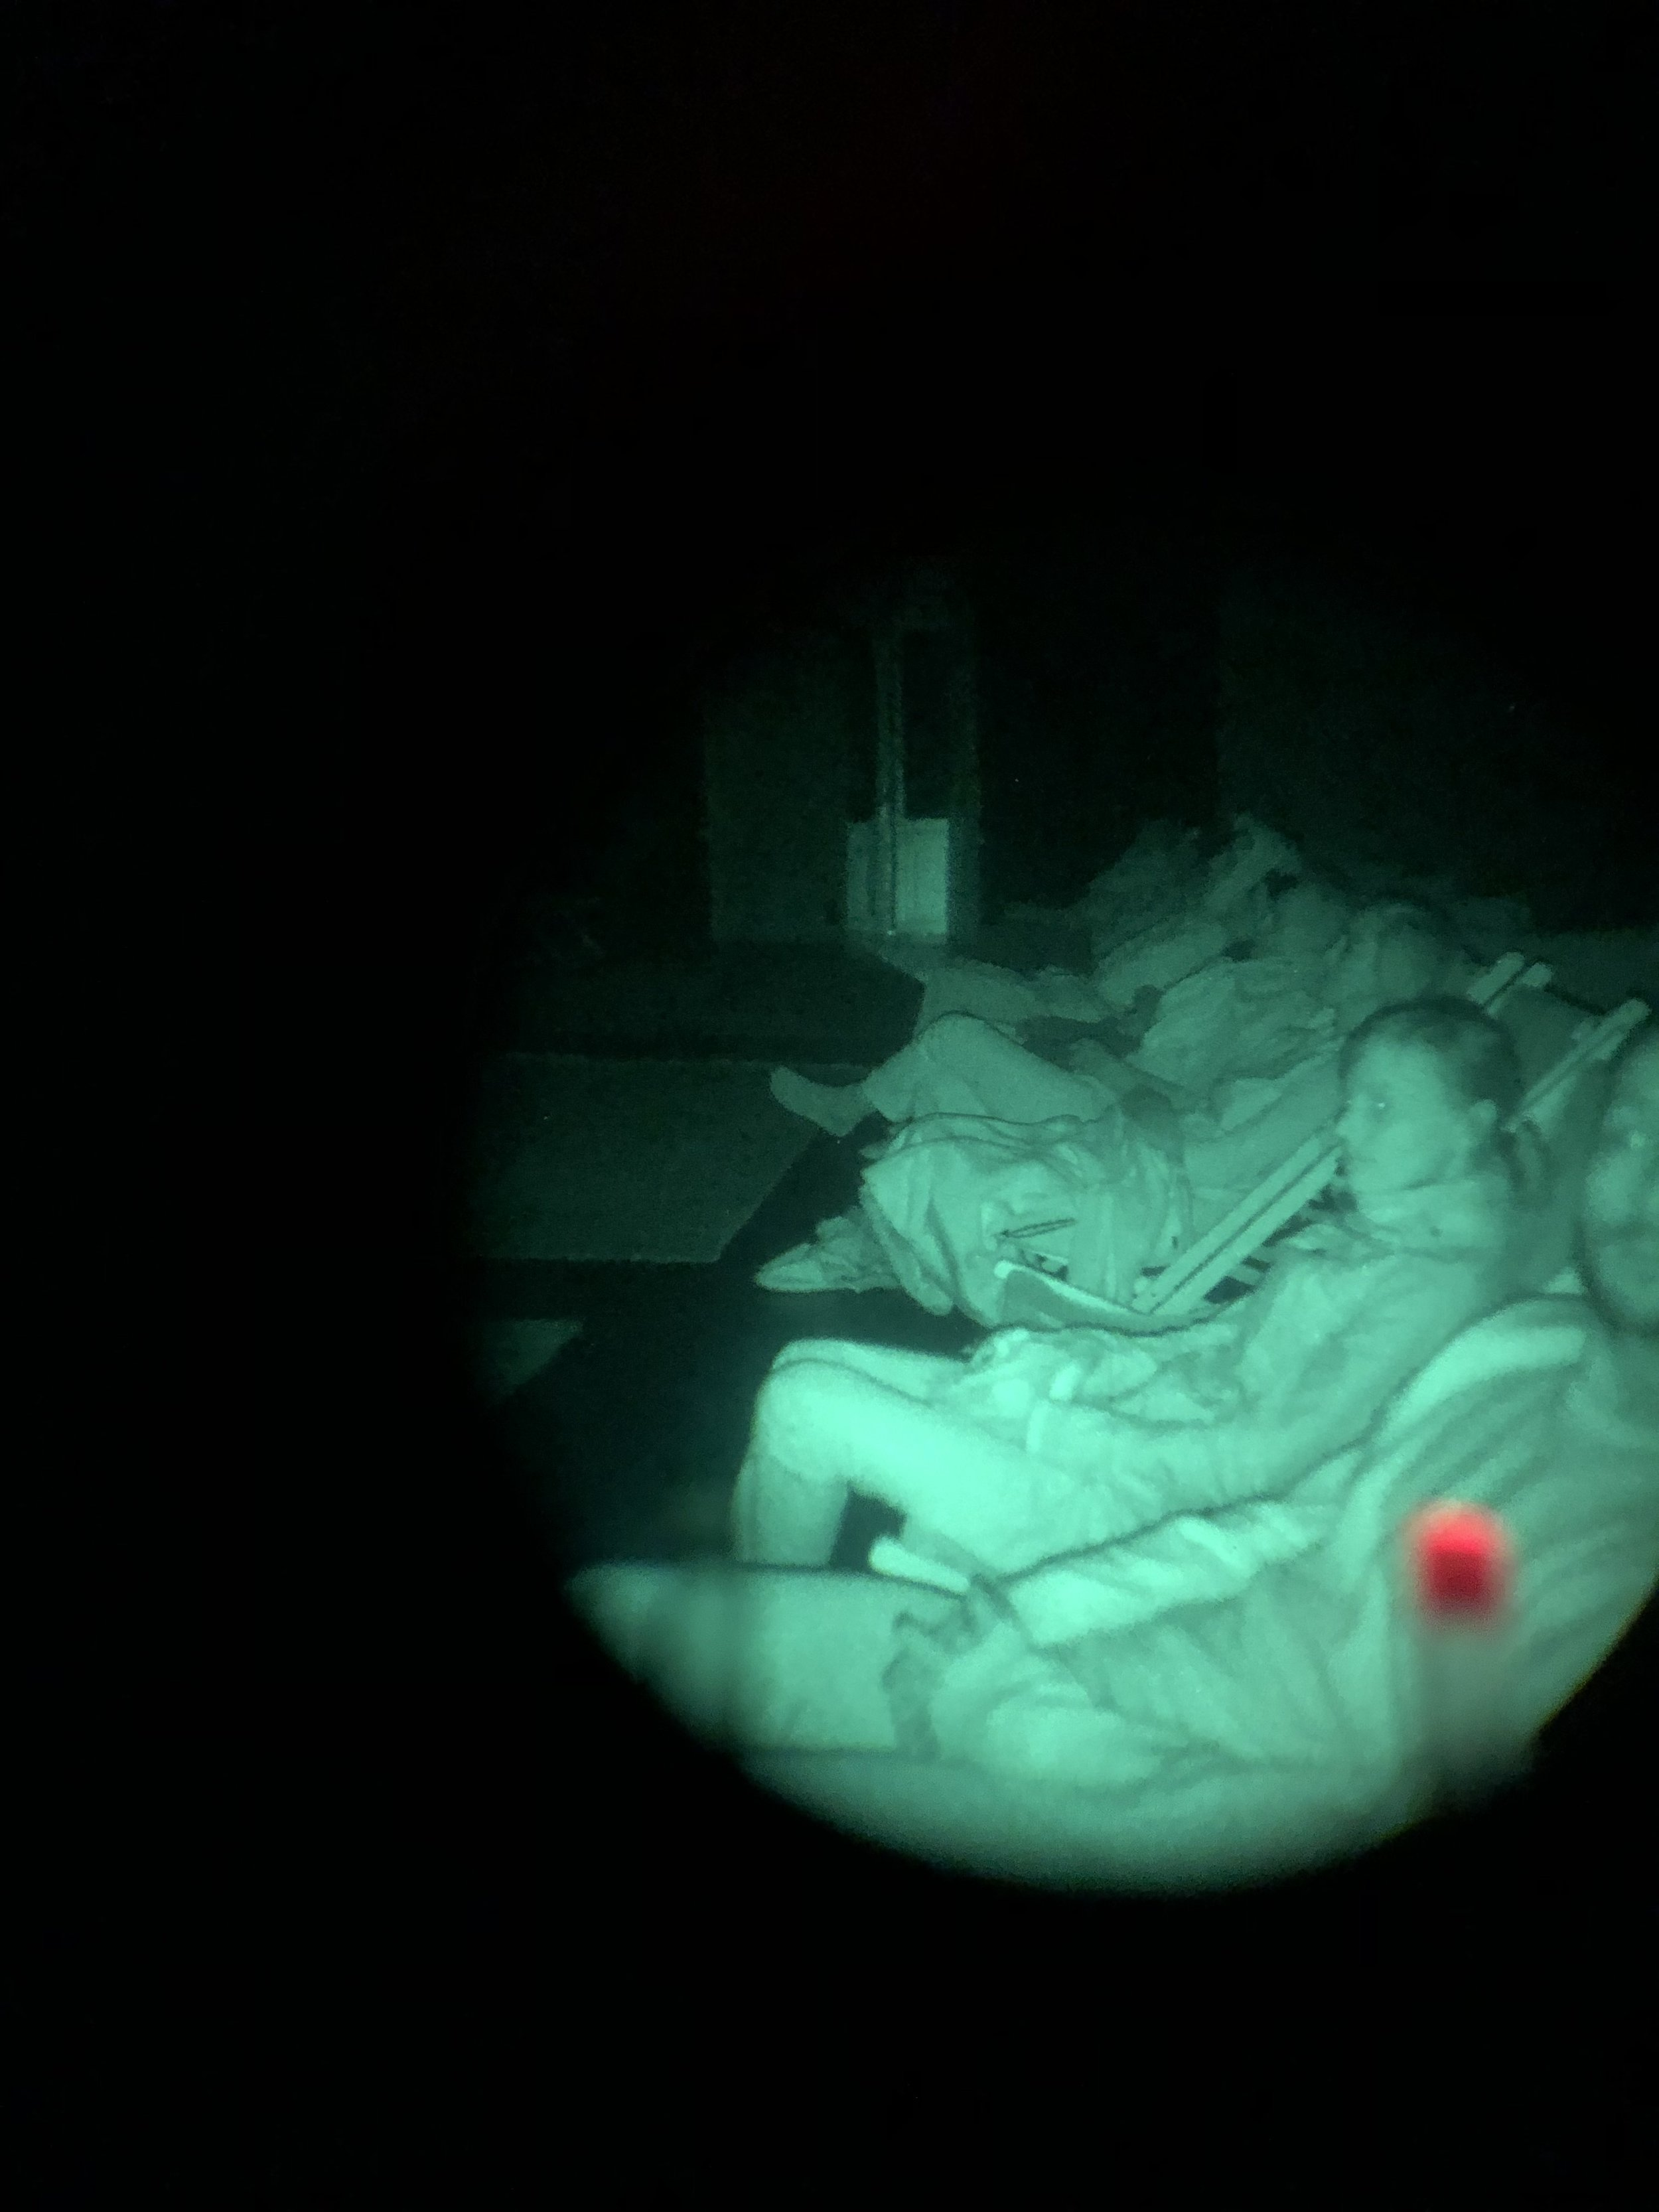 Photo taken with a night sight